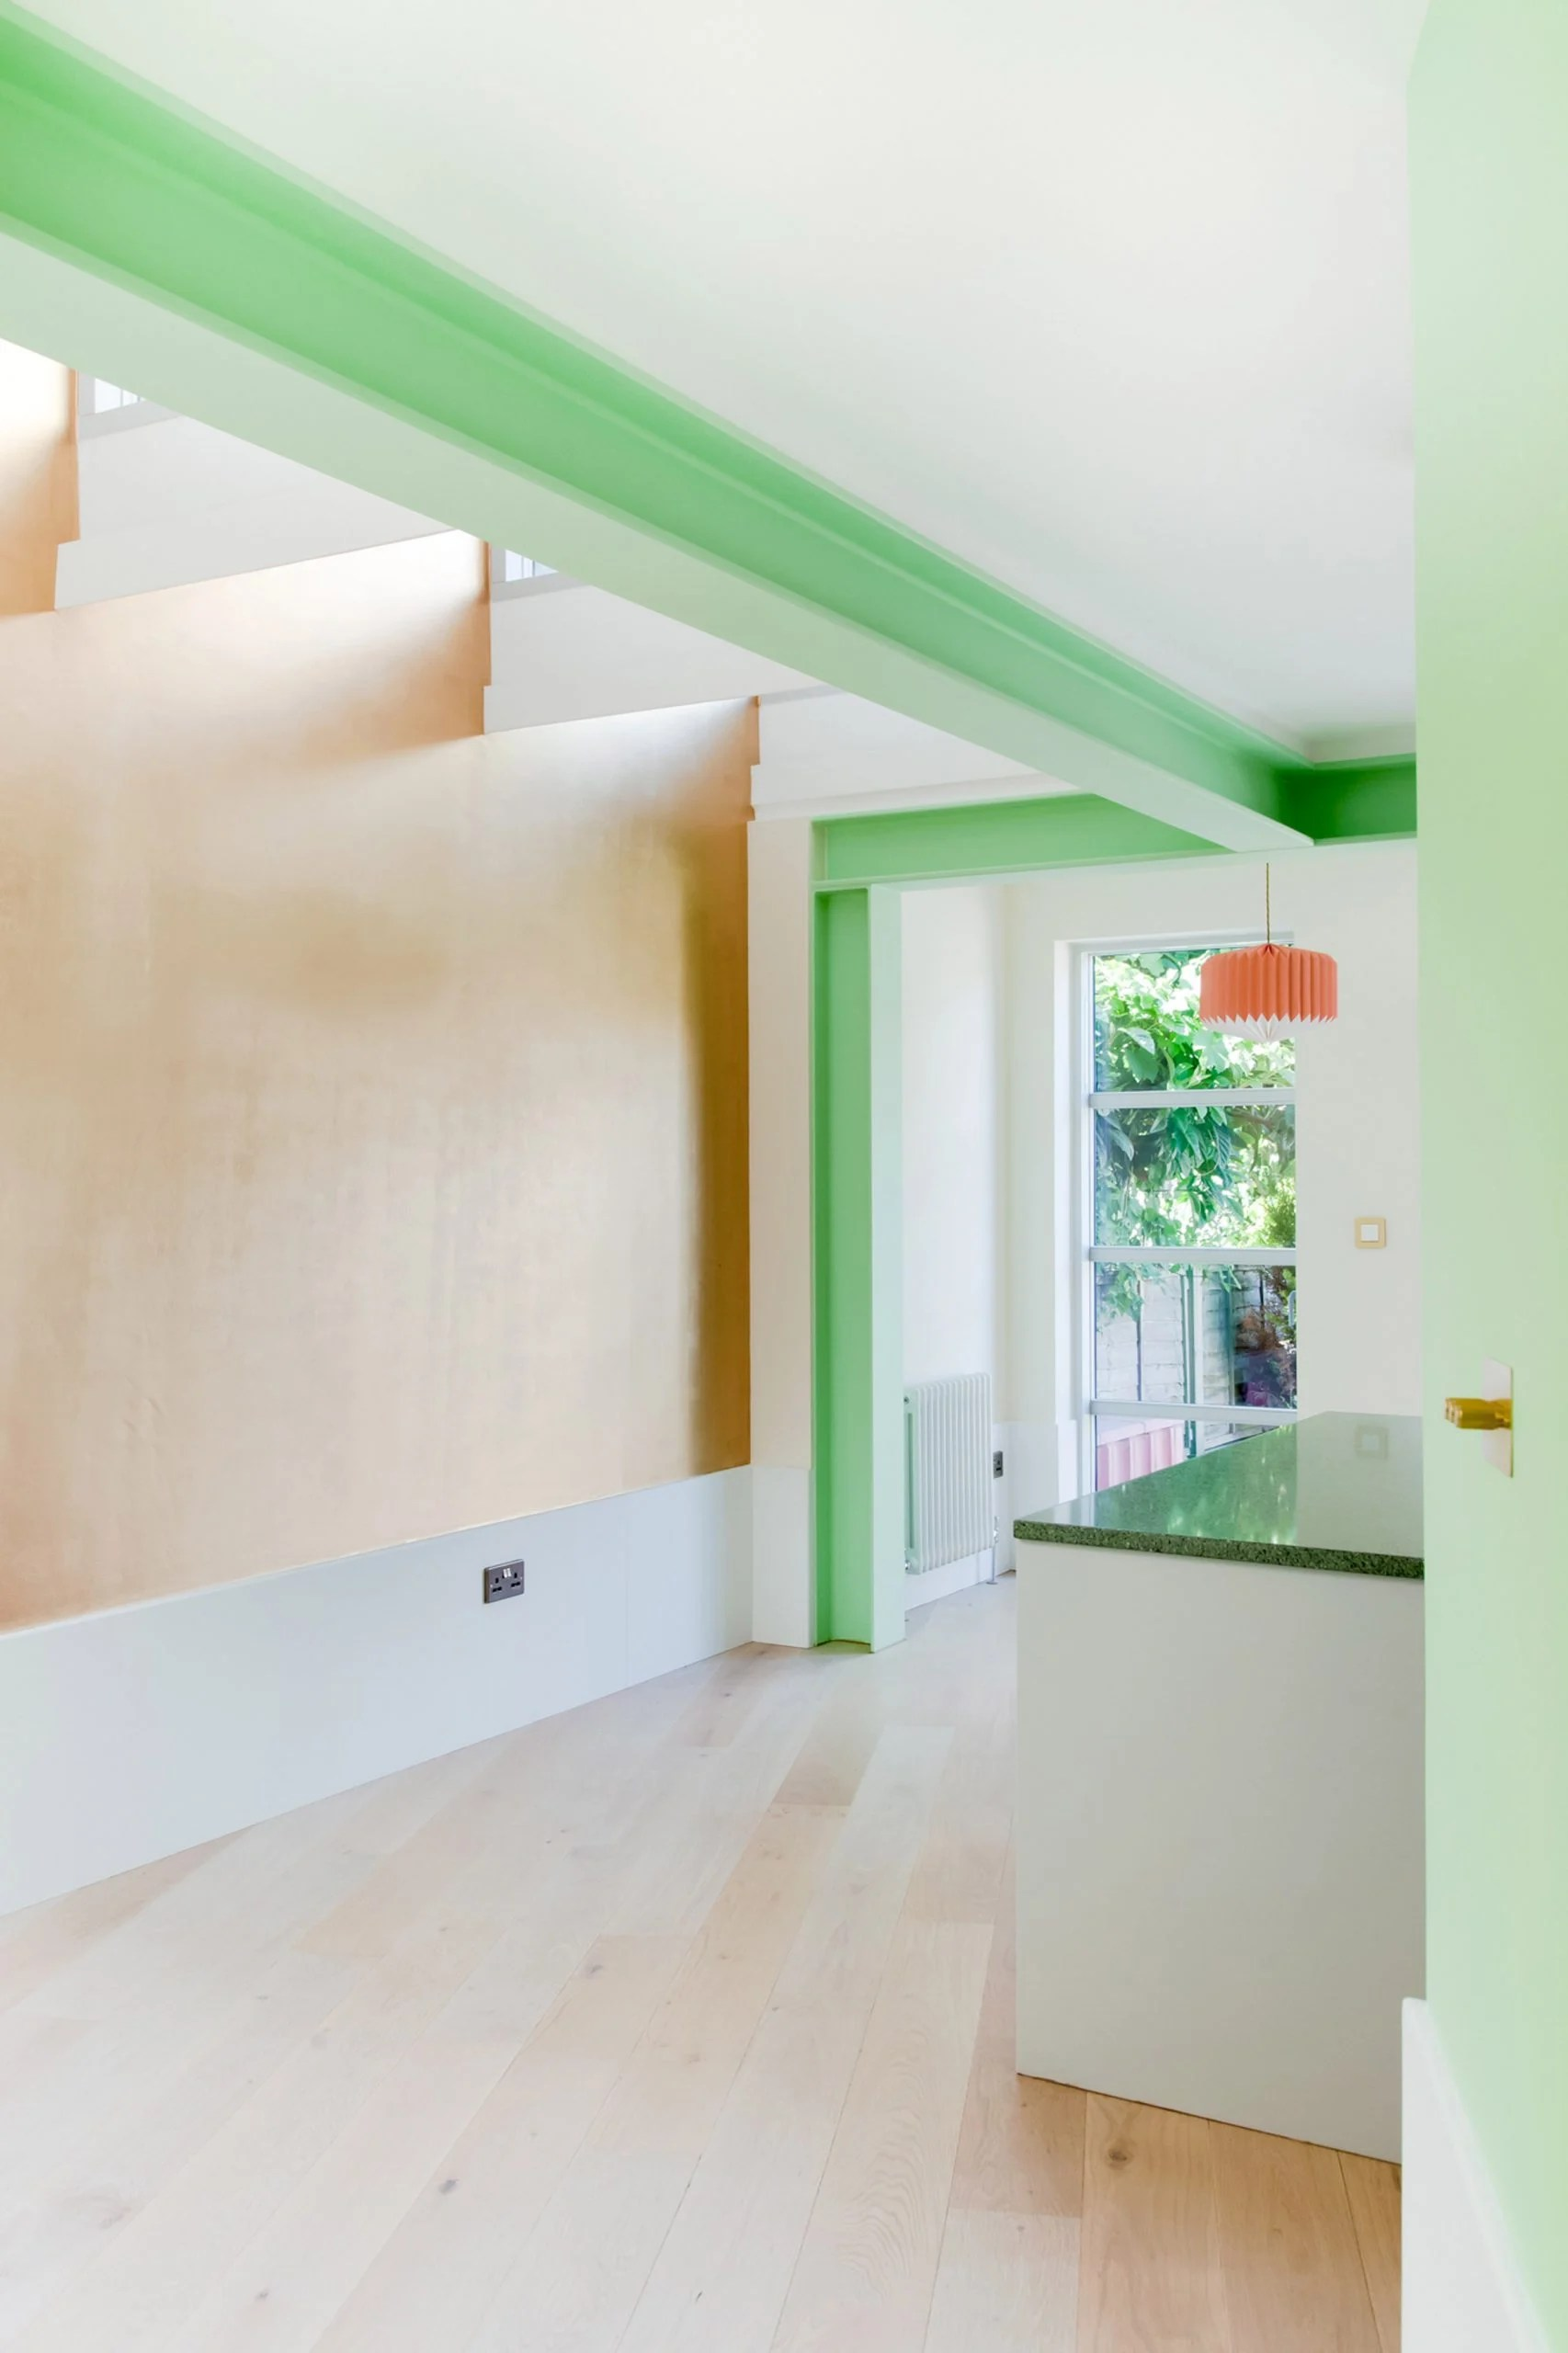 A light kitchen extension with green structural beams